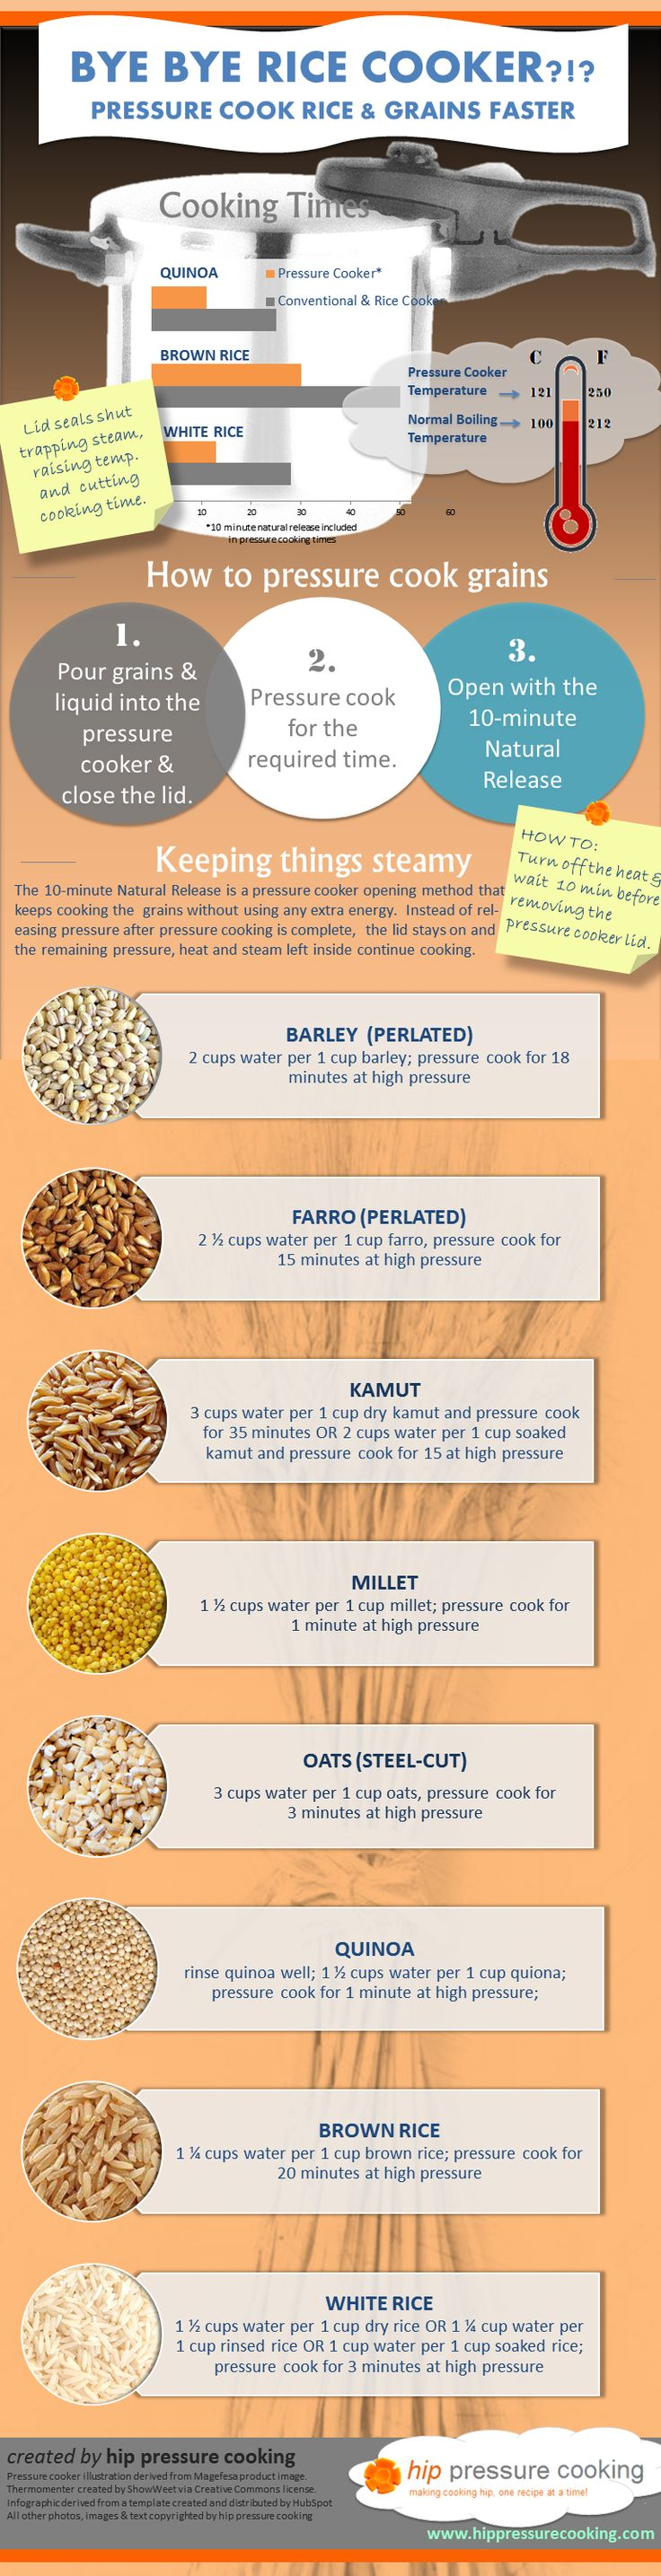 Infographic: Pressure Cook Rice & Grains Faster!